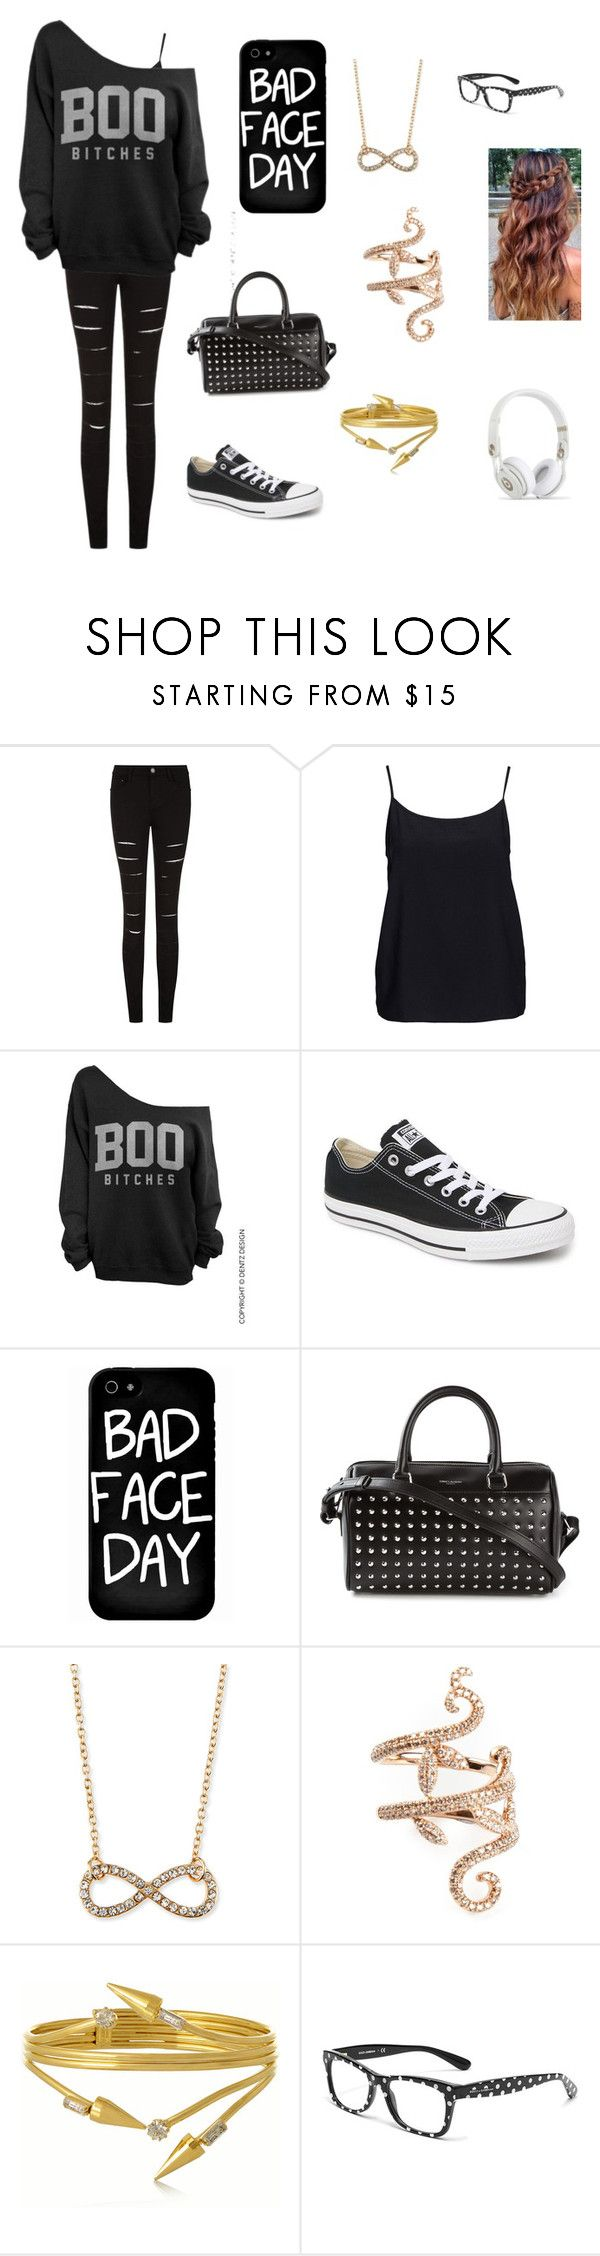 """Untitled #46"" by chloe950 ❤ liked on Polyvore featuring Vero Moda, Converse, Local Heroes, Yves Saint Laurent, Jules Smith, Elise Dray, VICKISARGE and Dolce&Gabbana"